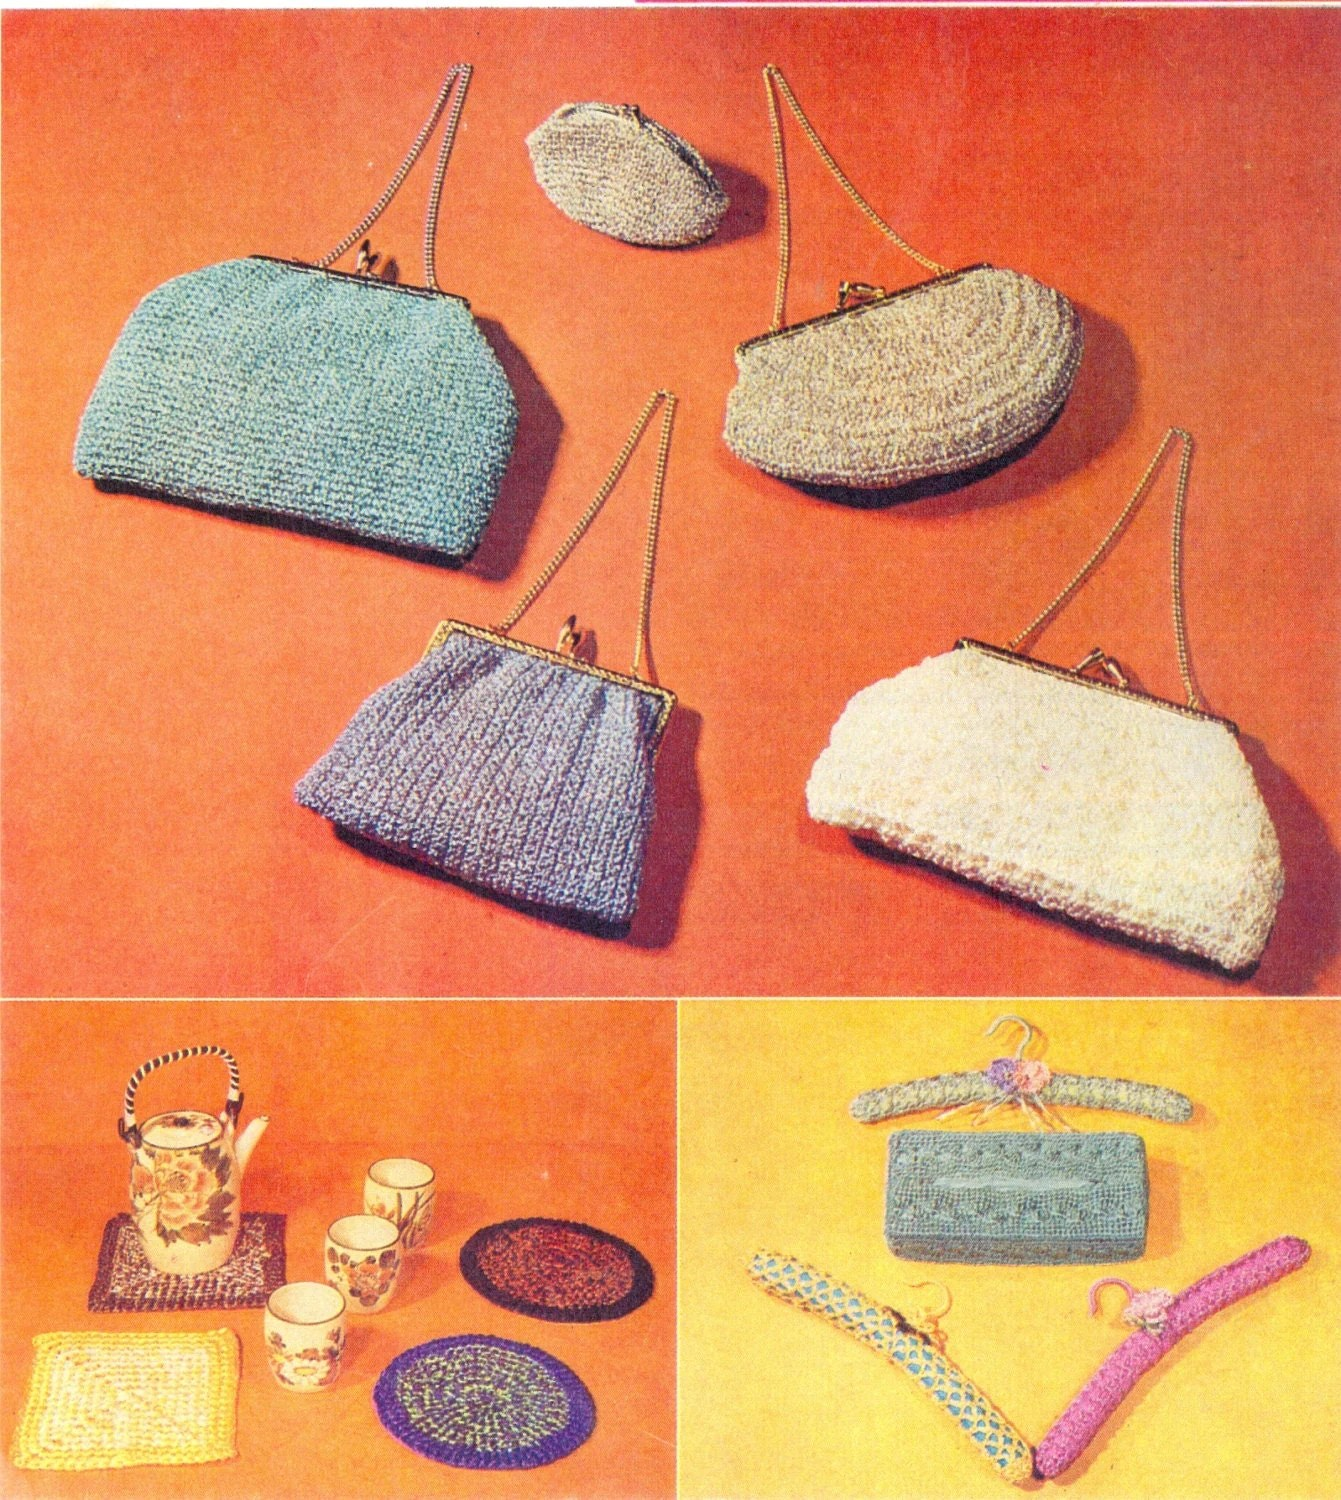 Knitting Pattern For Book Bag : PDF Vintage Knitting and Crochet Pattern Book   Bags, Tea Cosy, Place Setting...